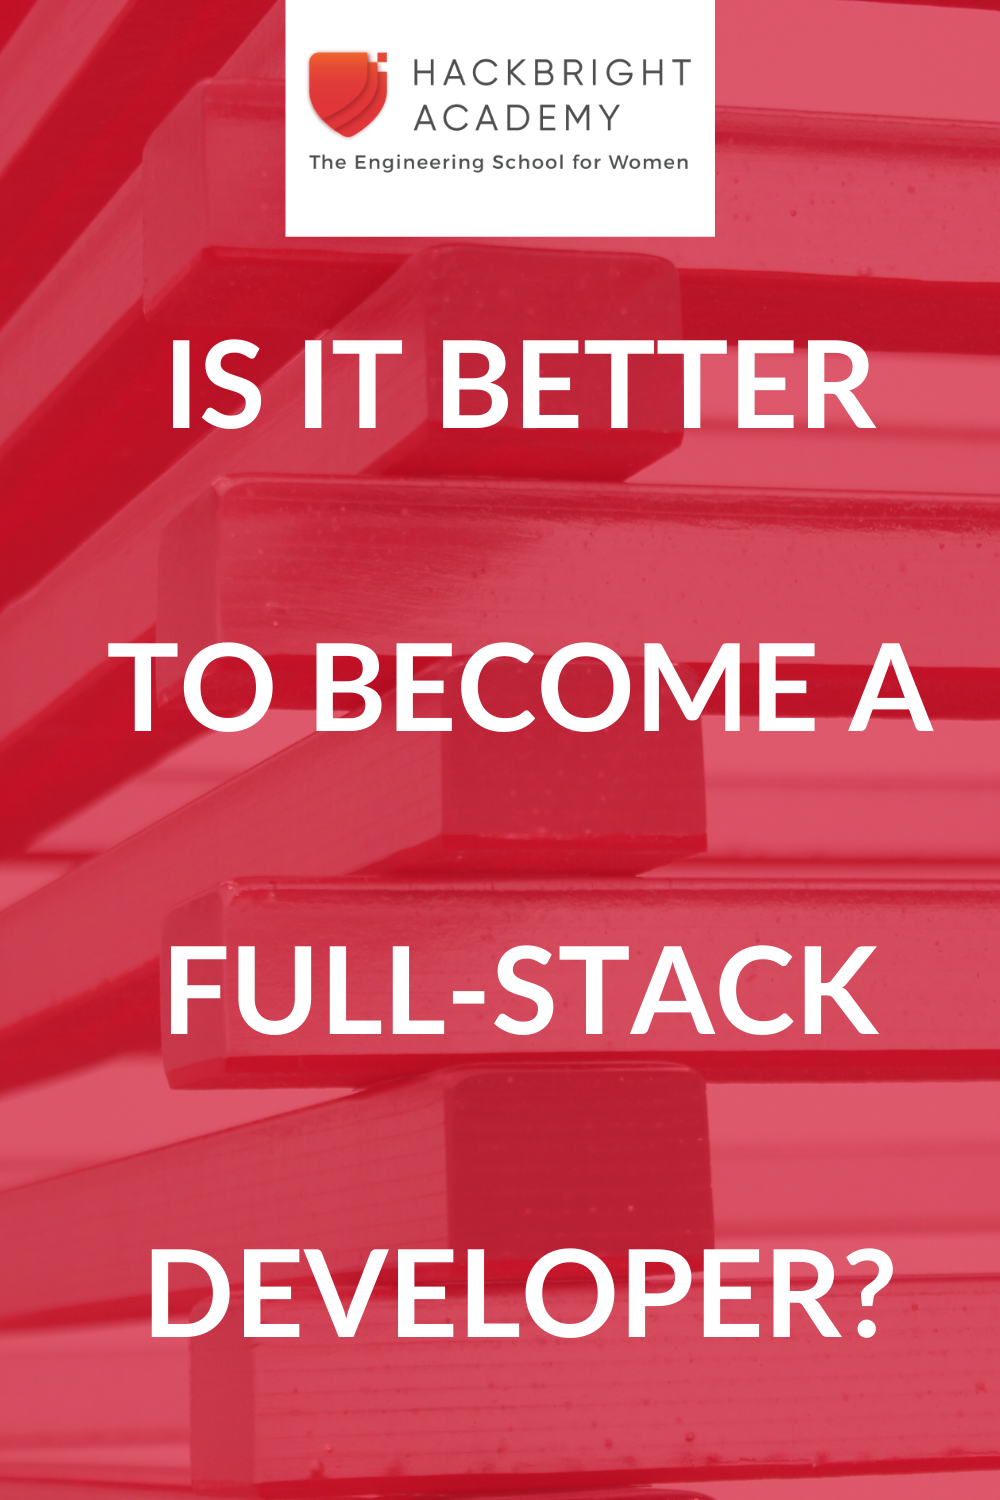 is it better to become a full-stack developer